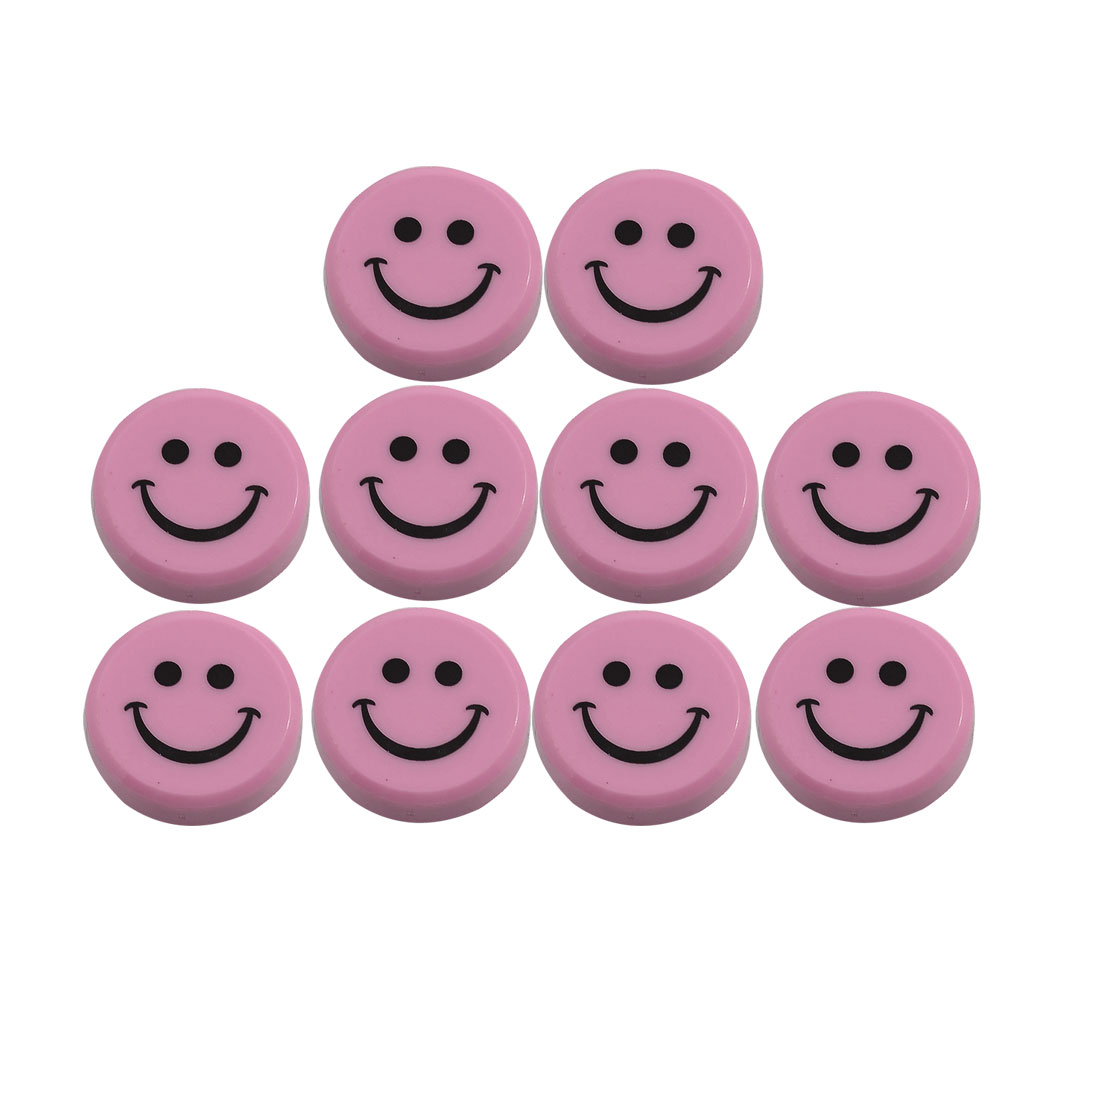 10 Pcs 30mm Round Plastic Smiling Face Refrigerator Magnets Pink